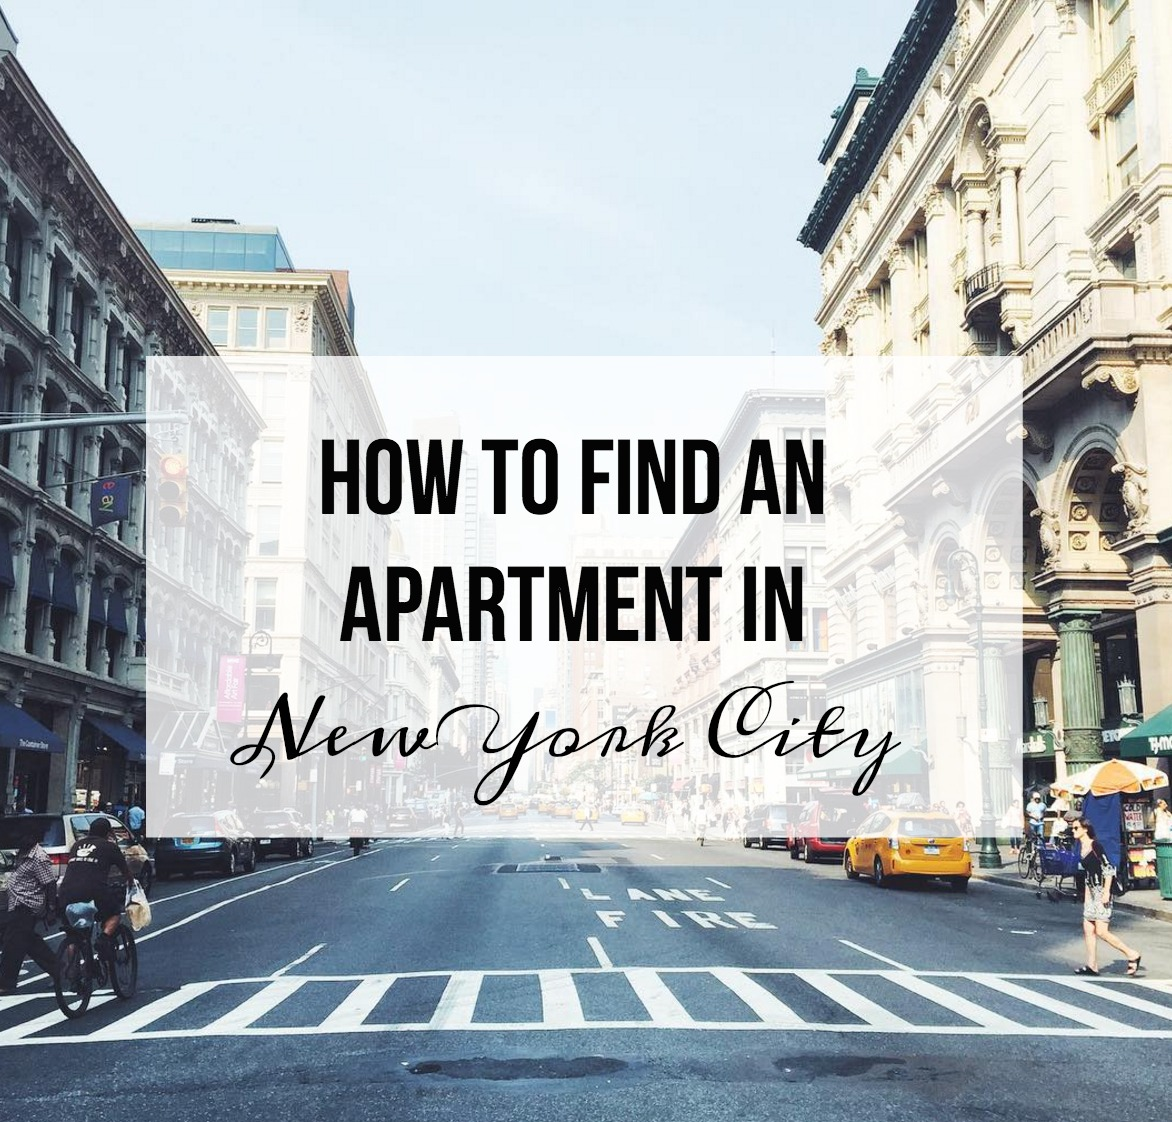 Apartment Finding: How To Find An Apartment In New York